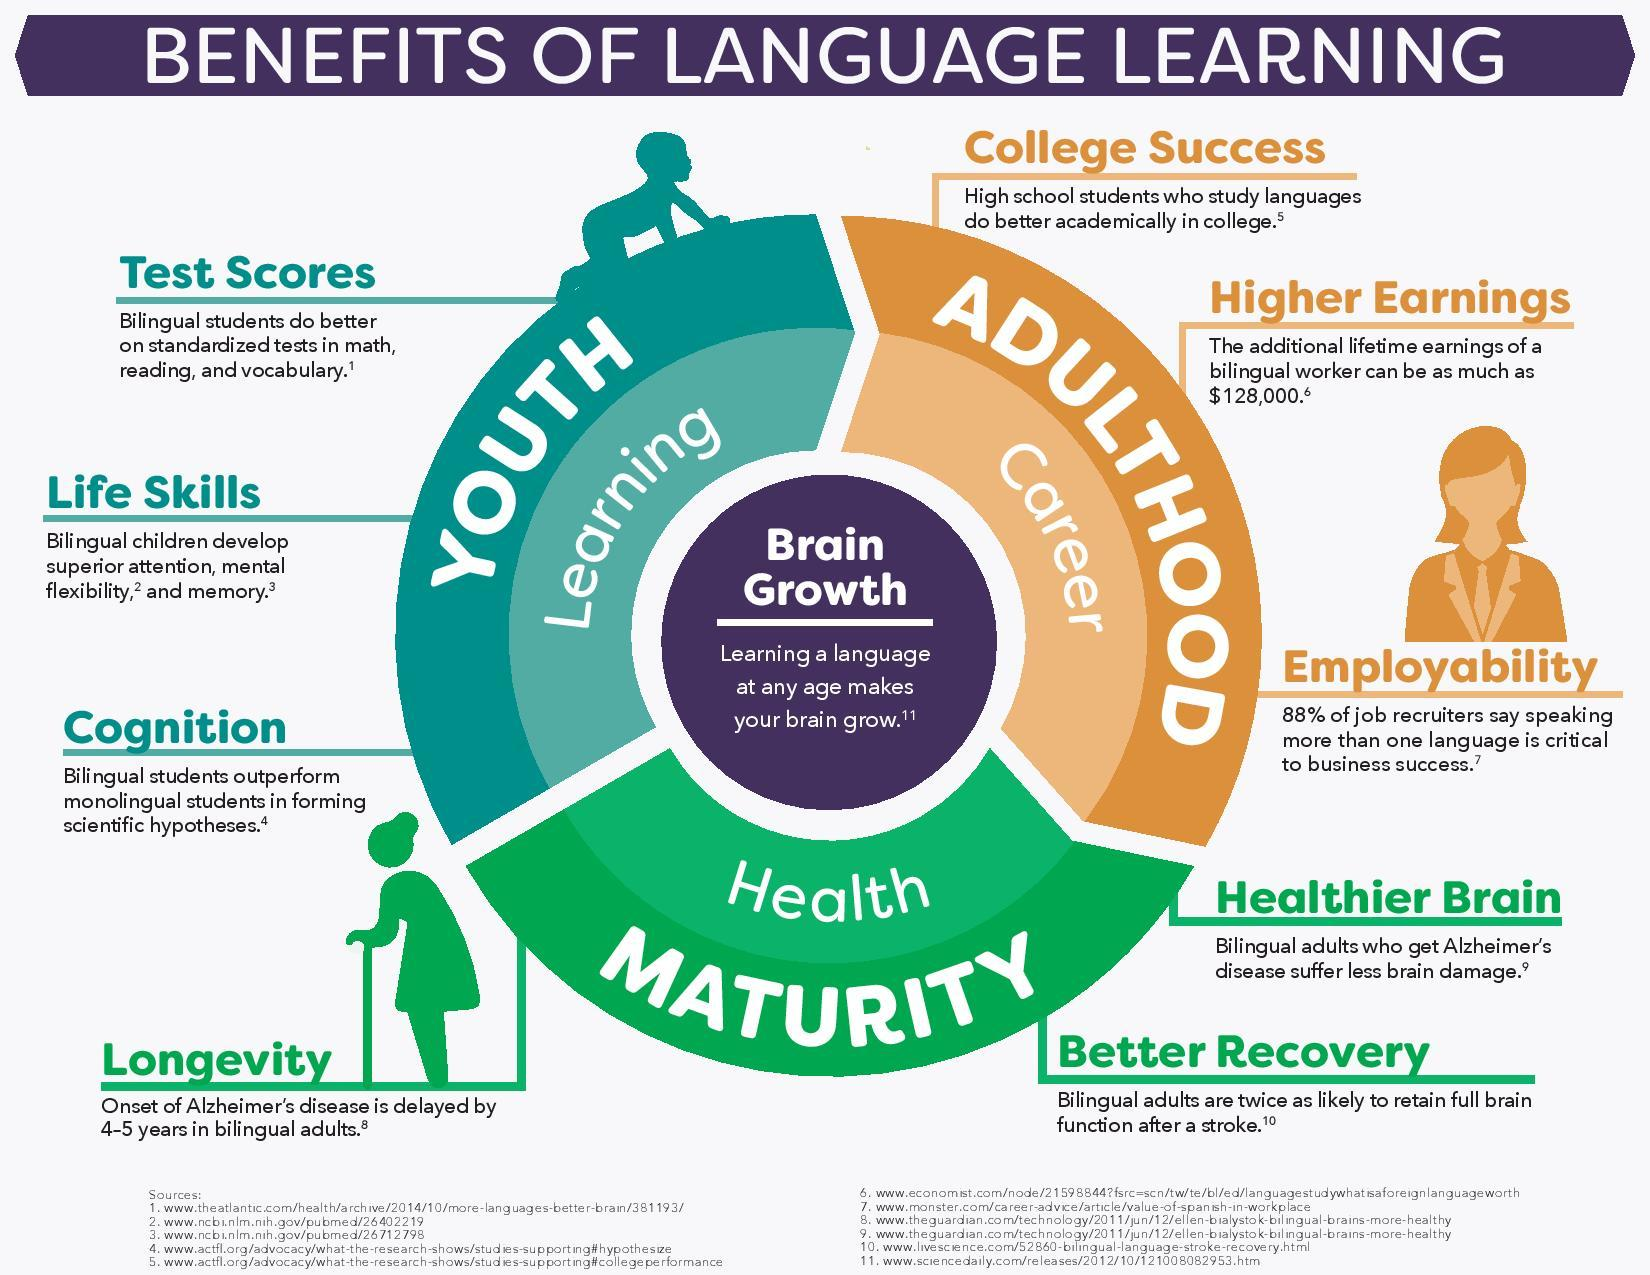 12 Benefits of A Learn at Lunch Program - playbook.amanet.org